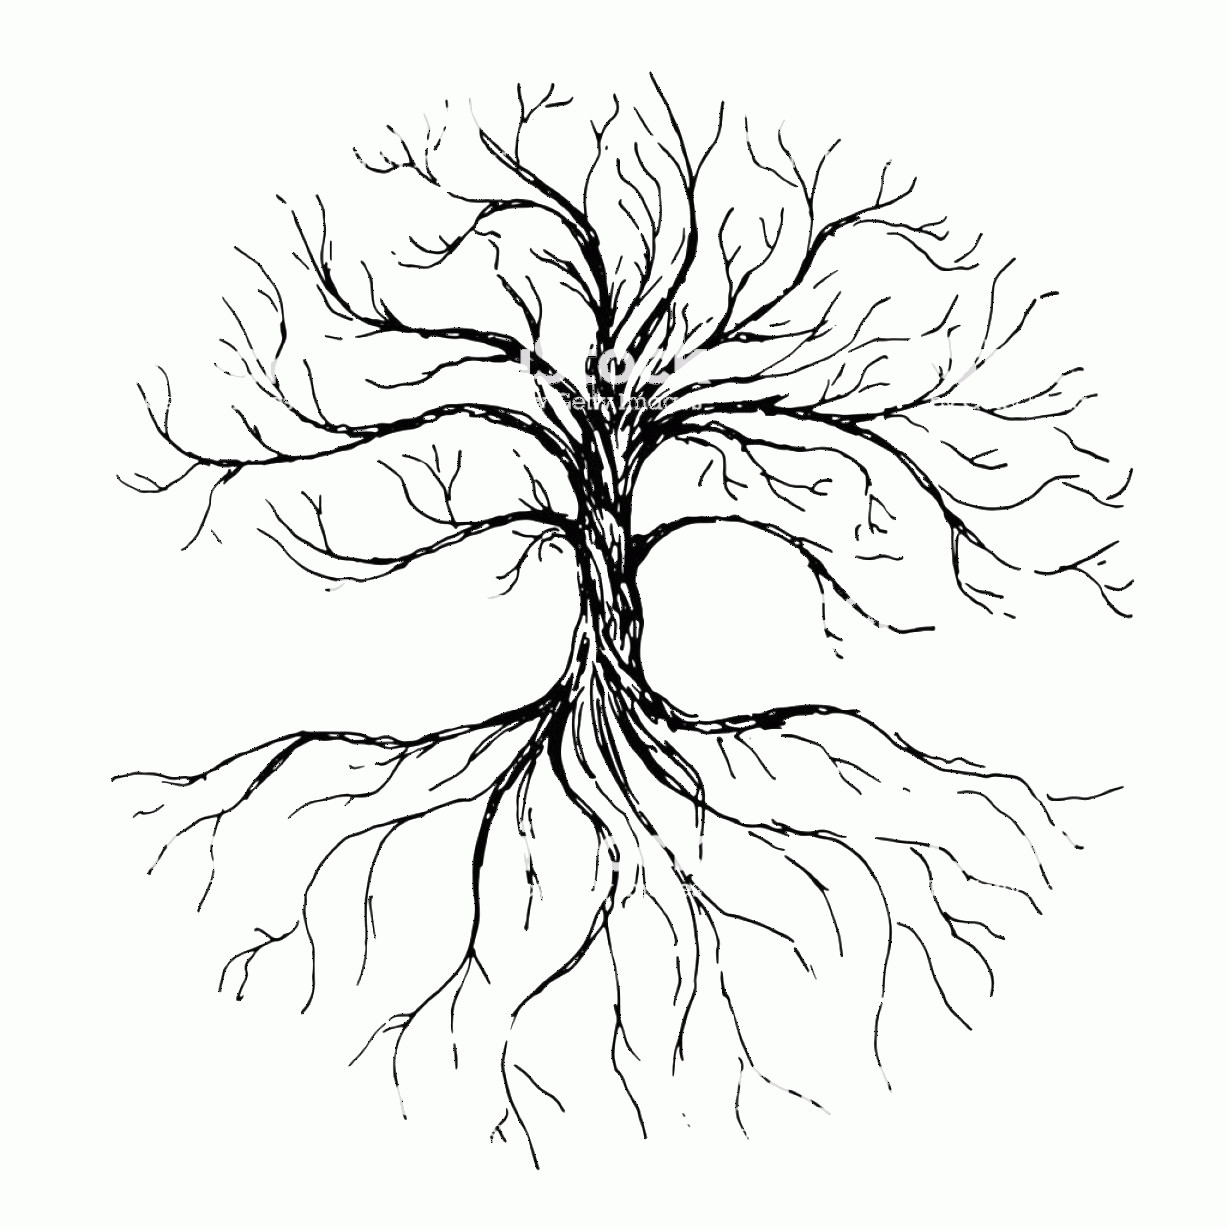 Vector Tree With Roots Drawing: Tree Of Life Vector Illustration With Tree And Roots Silhouette Hand Drawn Ink Gm